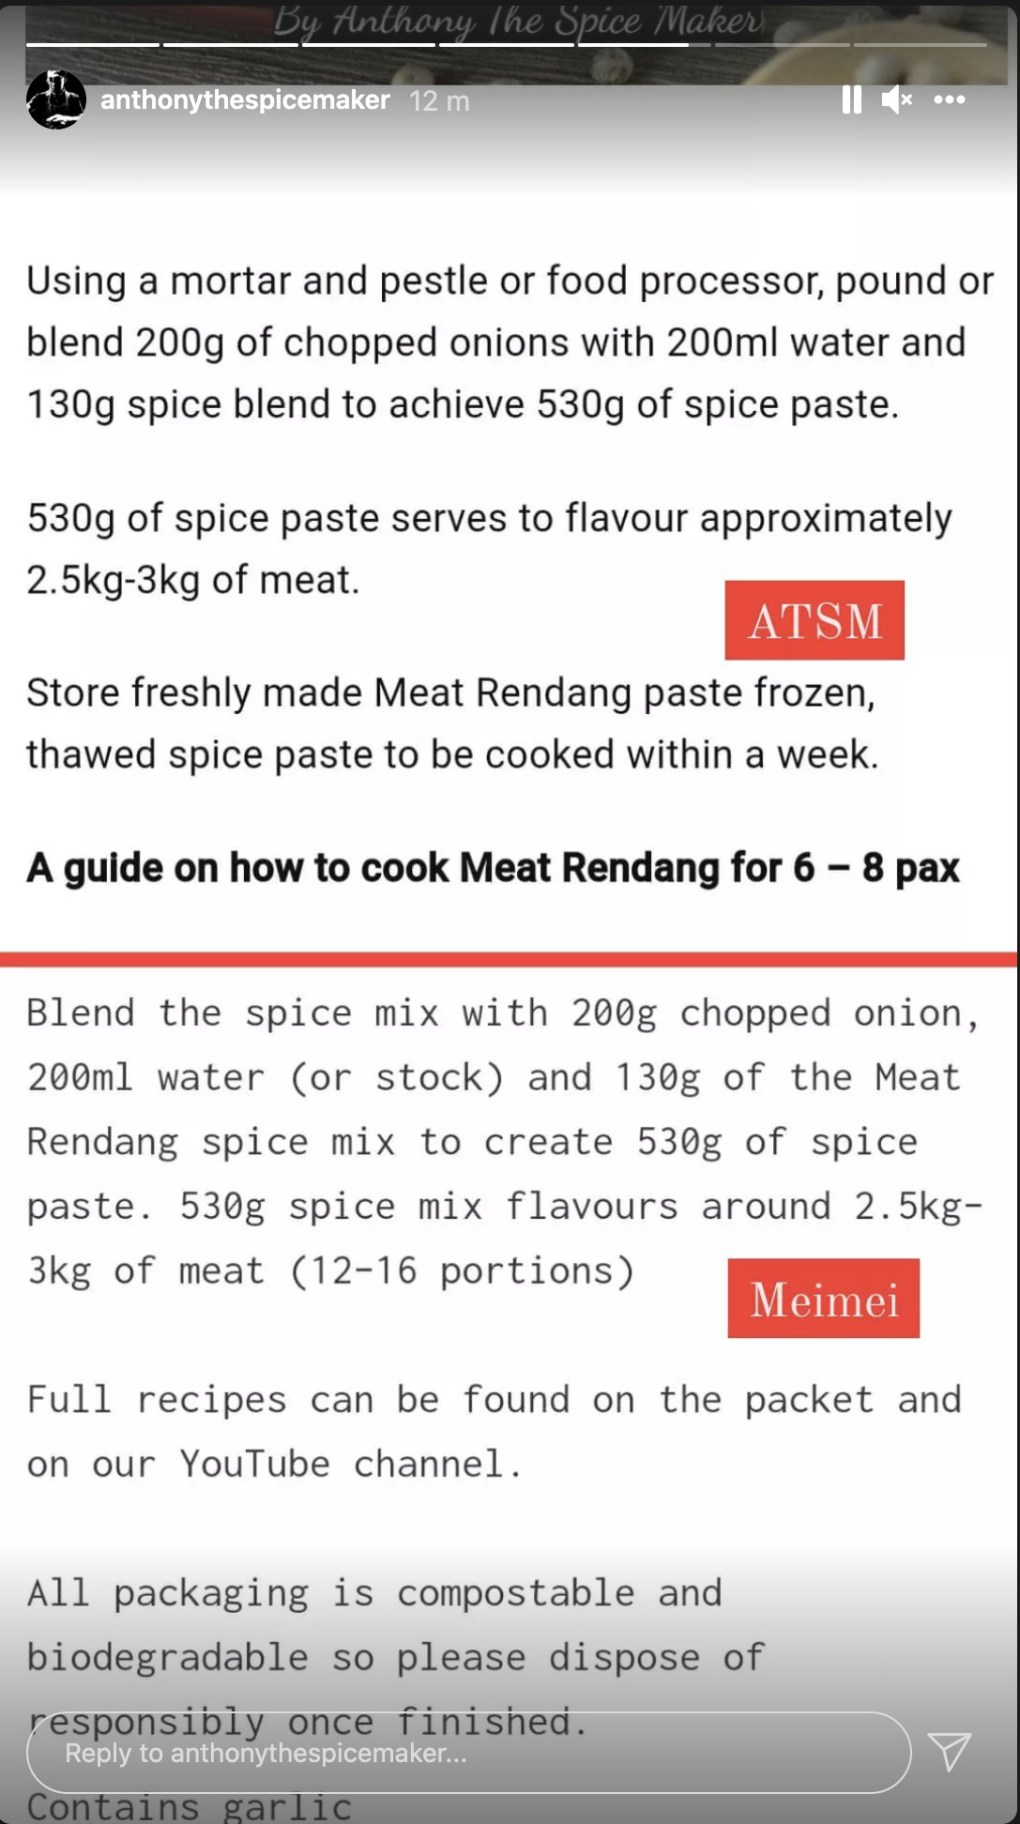 A screenshot of an Instagram Story from Singaporean company Anthony the Spicemaker, comparing recipes for meat rendang on its product page and that of Mei Mei, Elizabeth Haigh's company. The quantities given and method are close to identical.